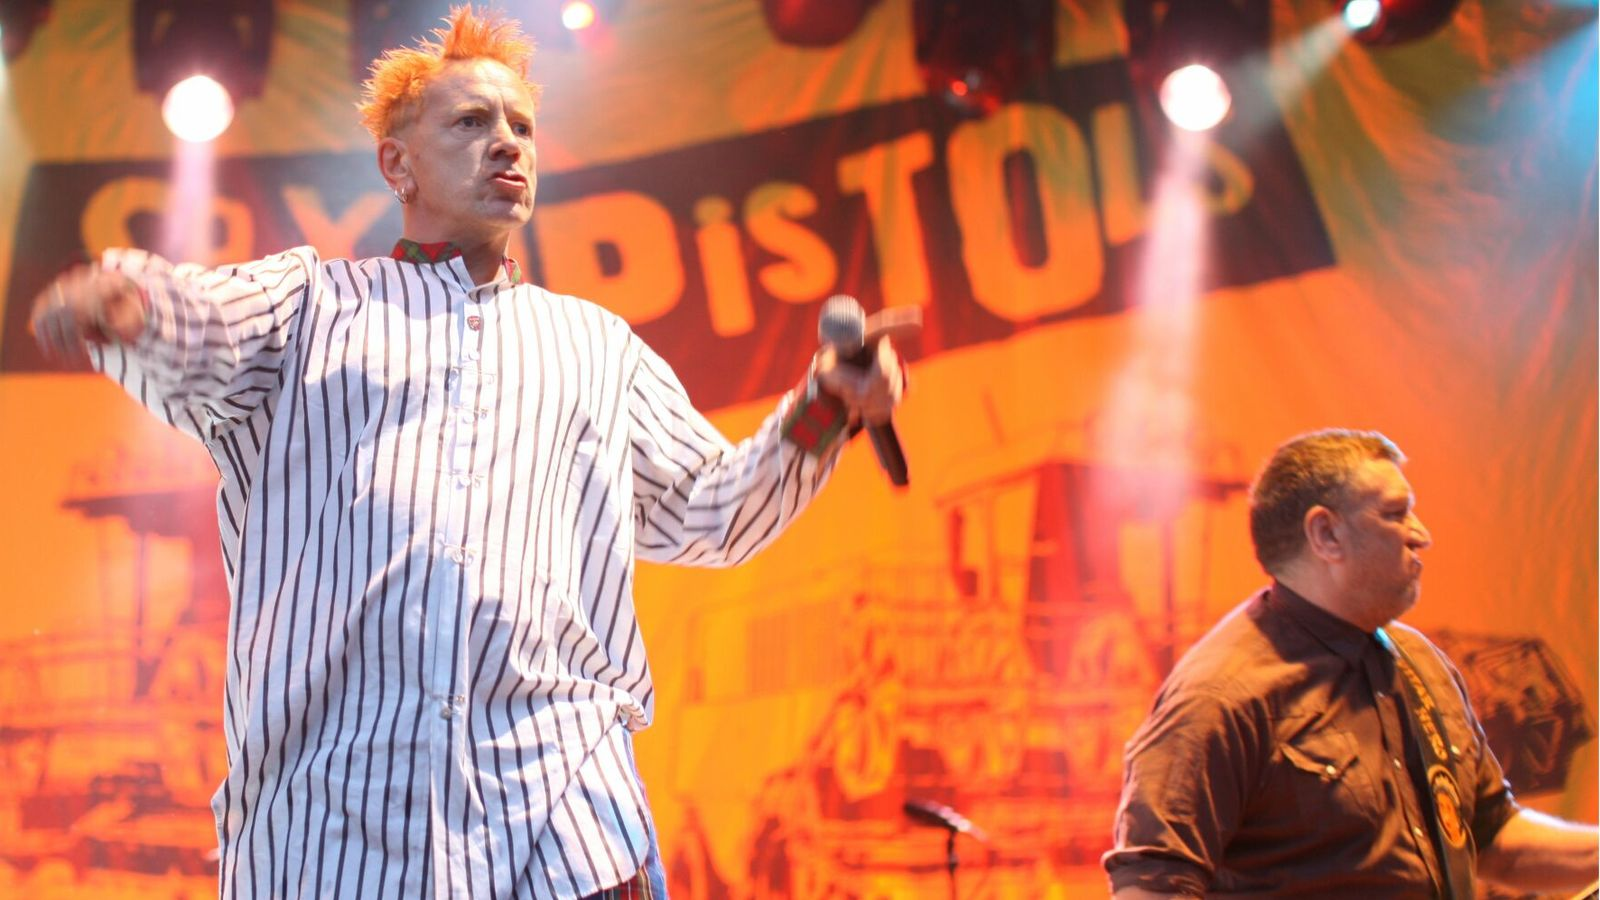 Sex Pistols: Former members suing Johnny Rotten over right to use group's music in upcoming Danny Boyle series